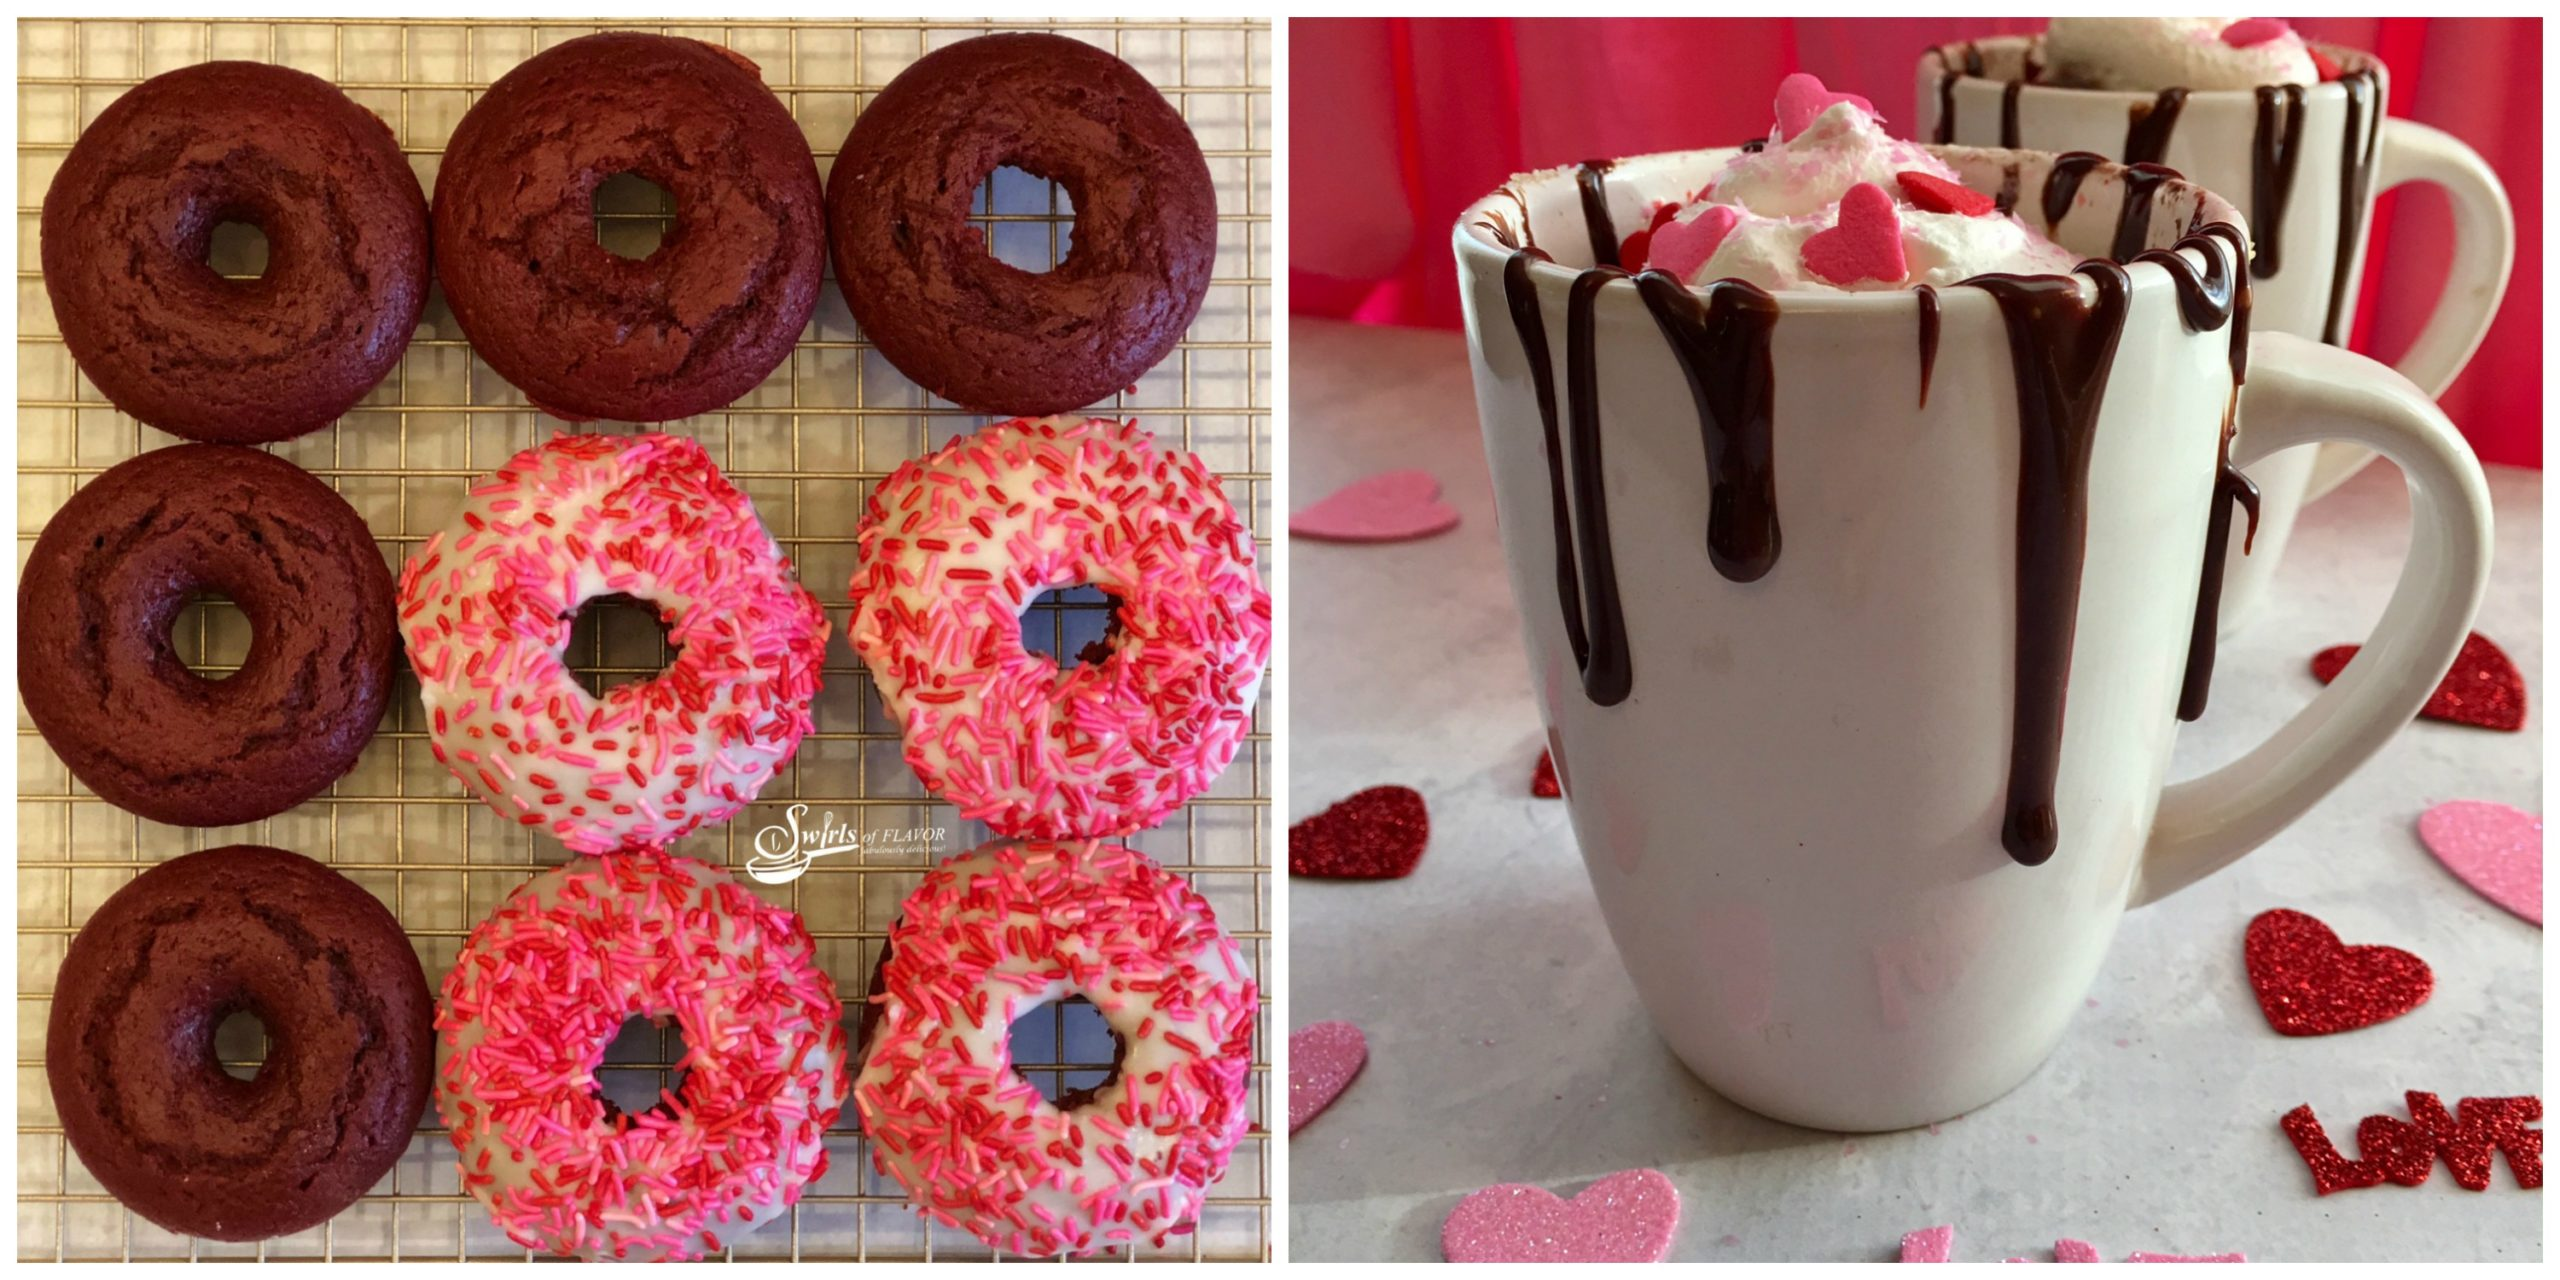 Red Velvet Donuts and Hot Chocolate Mug Cake